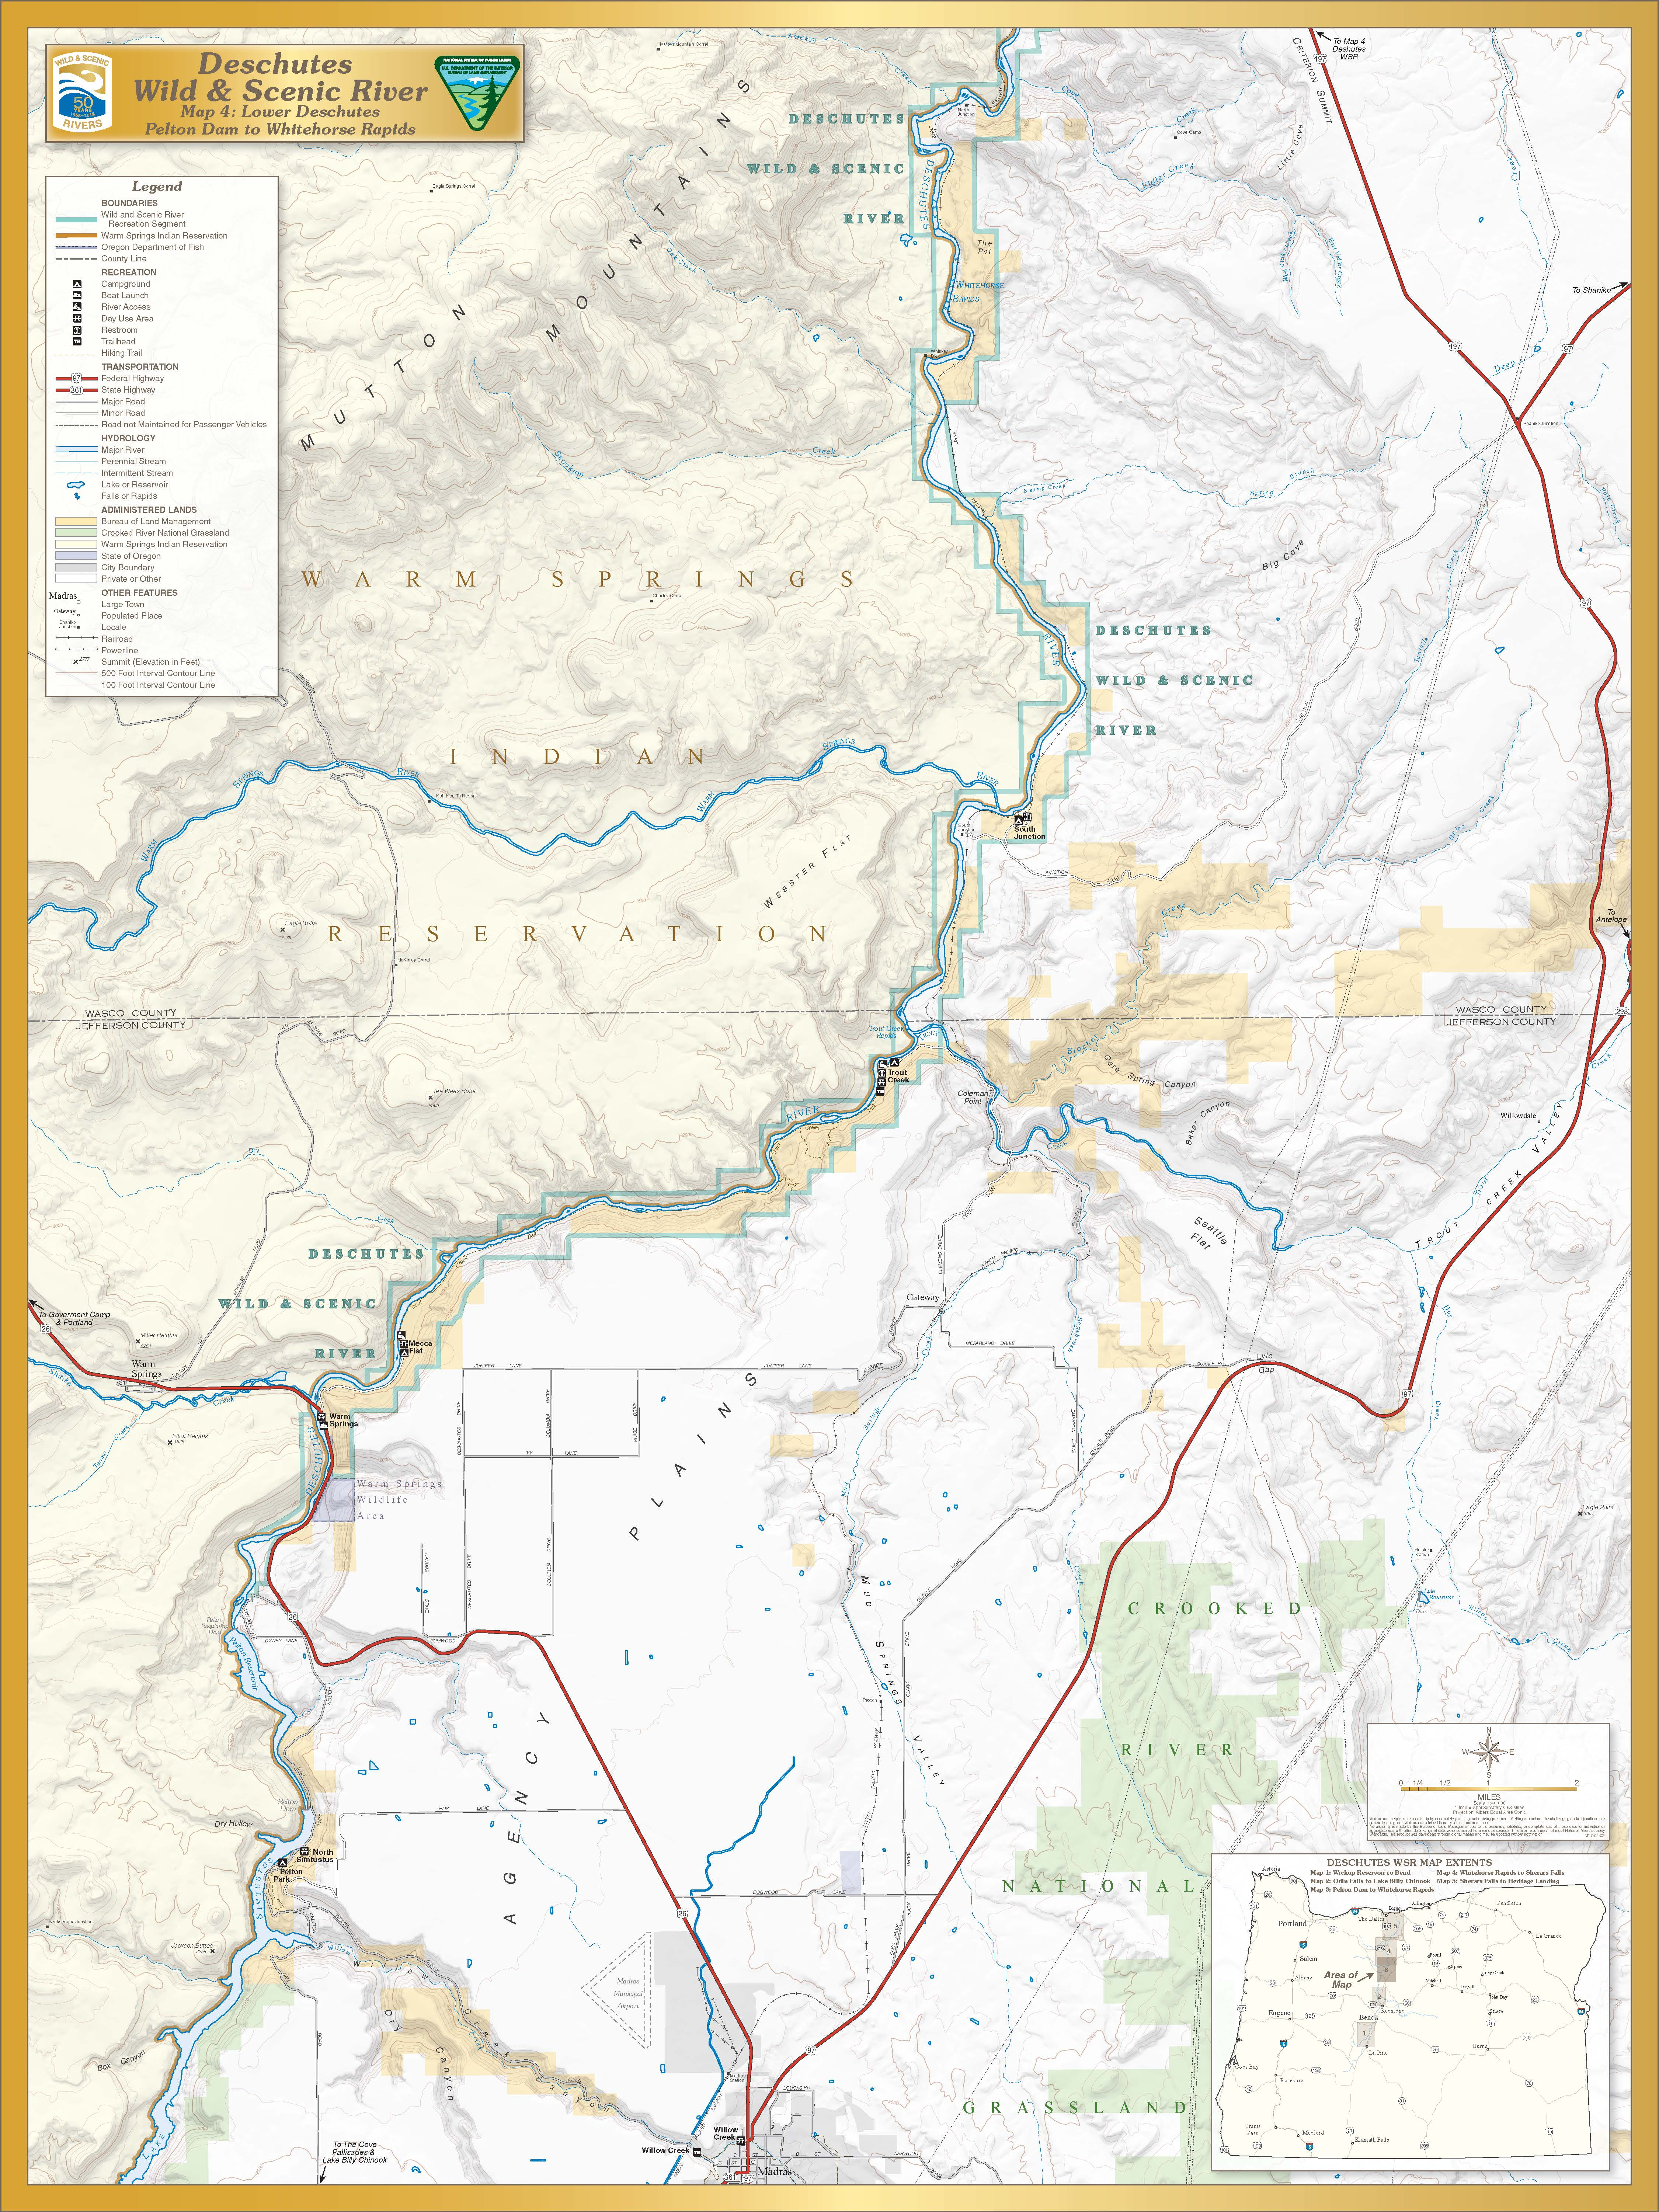 File:Deschutes Wild and Scenic River -- Map 3 (38979851642) jpg